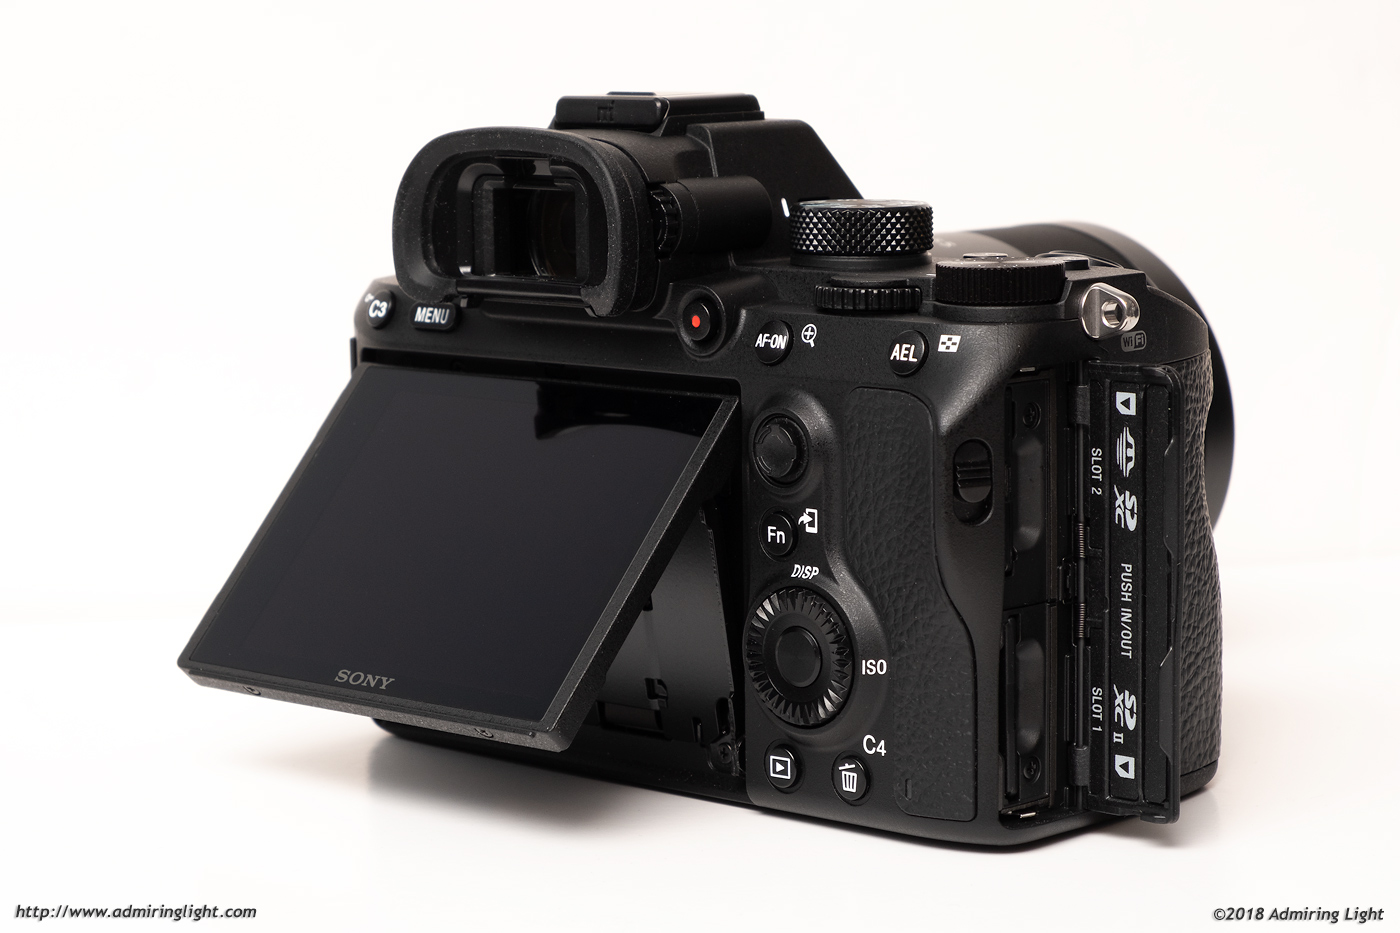 The tilting rear screen and dual card slots of the A7 III